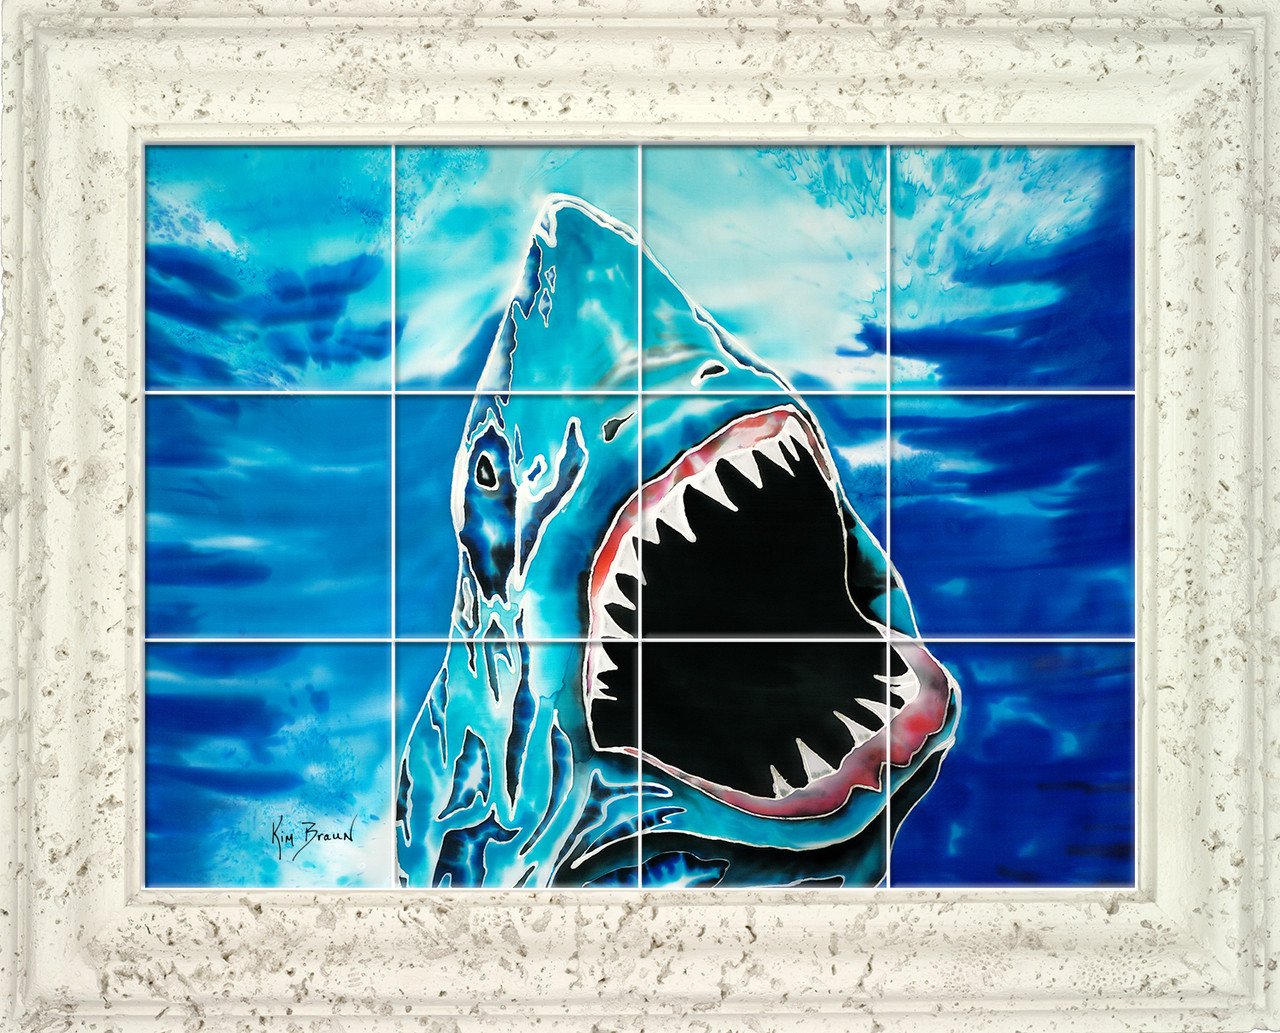 Shark Attack Ceramic Tile Mural | Kim Braun | Live Free Ink